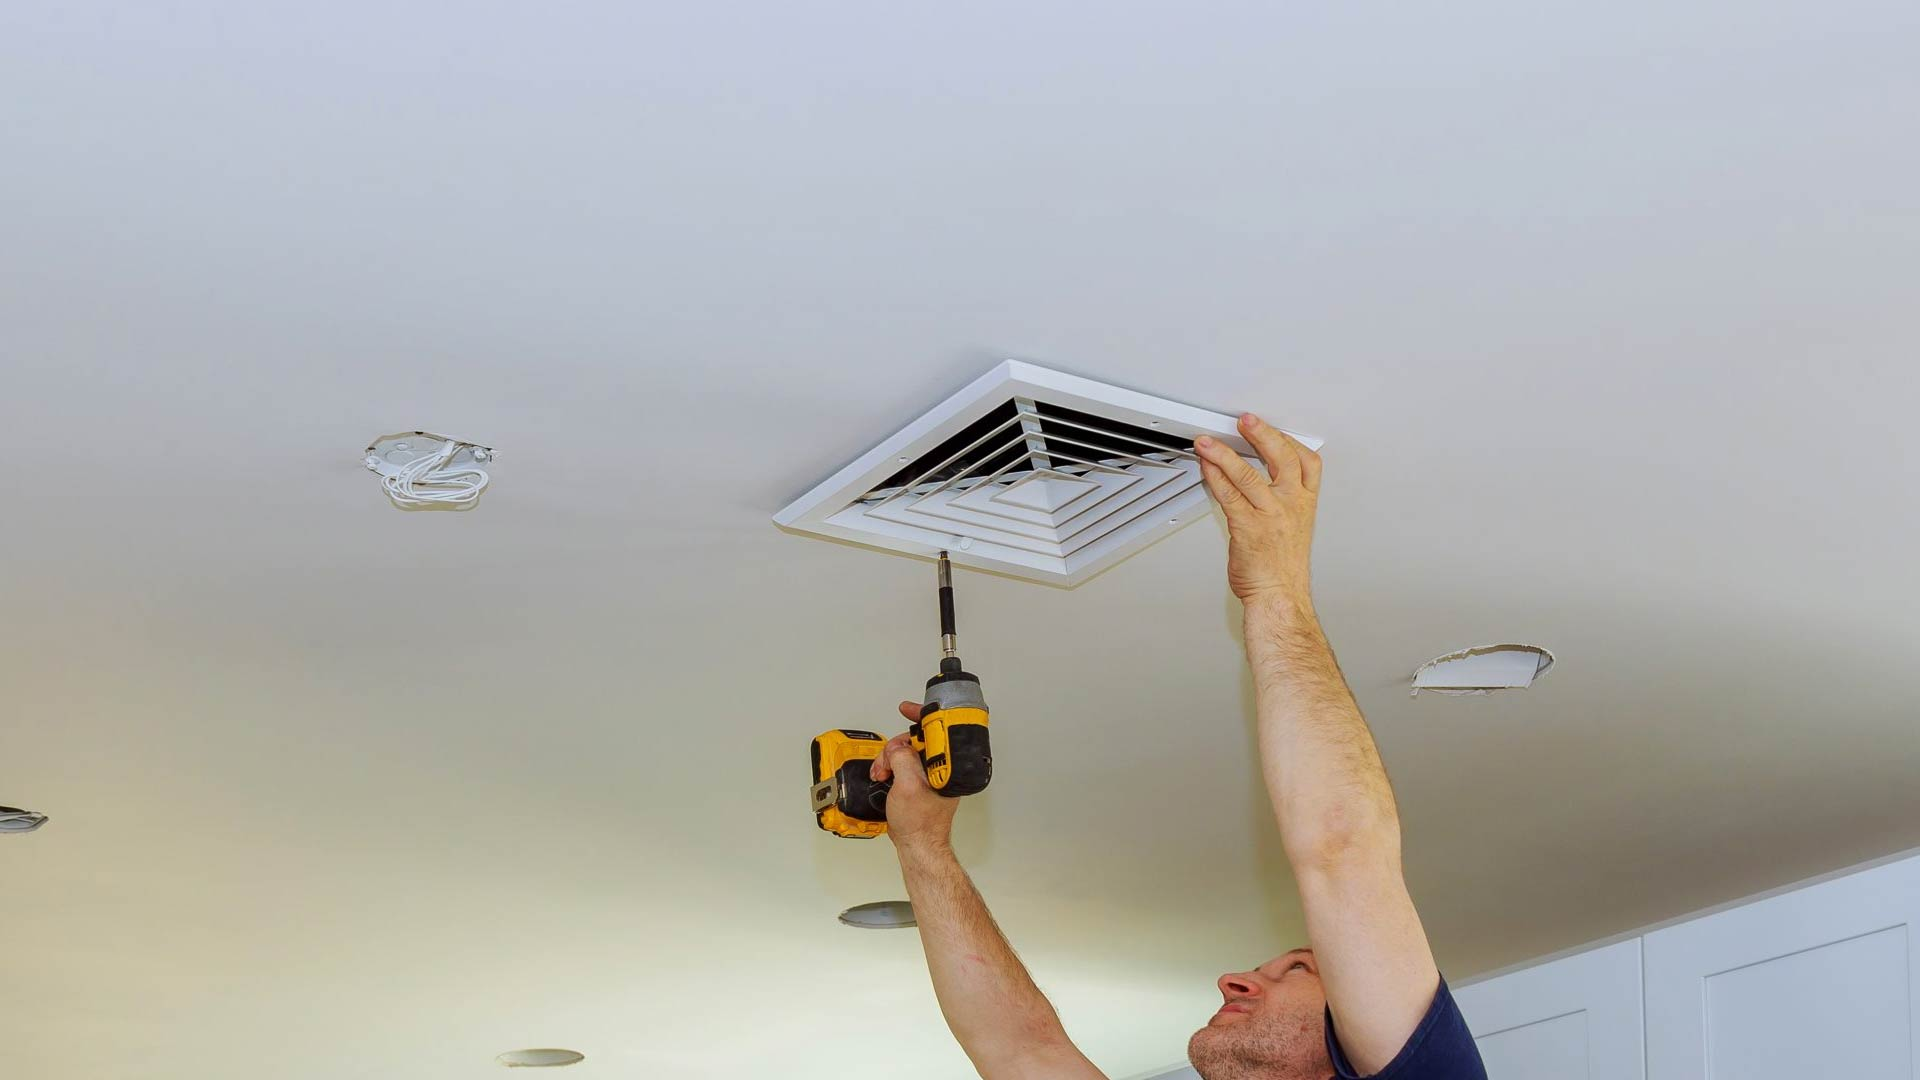 Mini Duct Cleaning & Sanitation | S & R Air Duct Cleaning Services